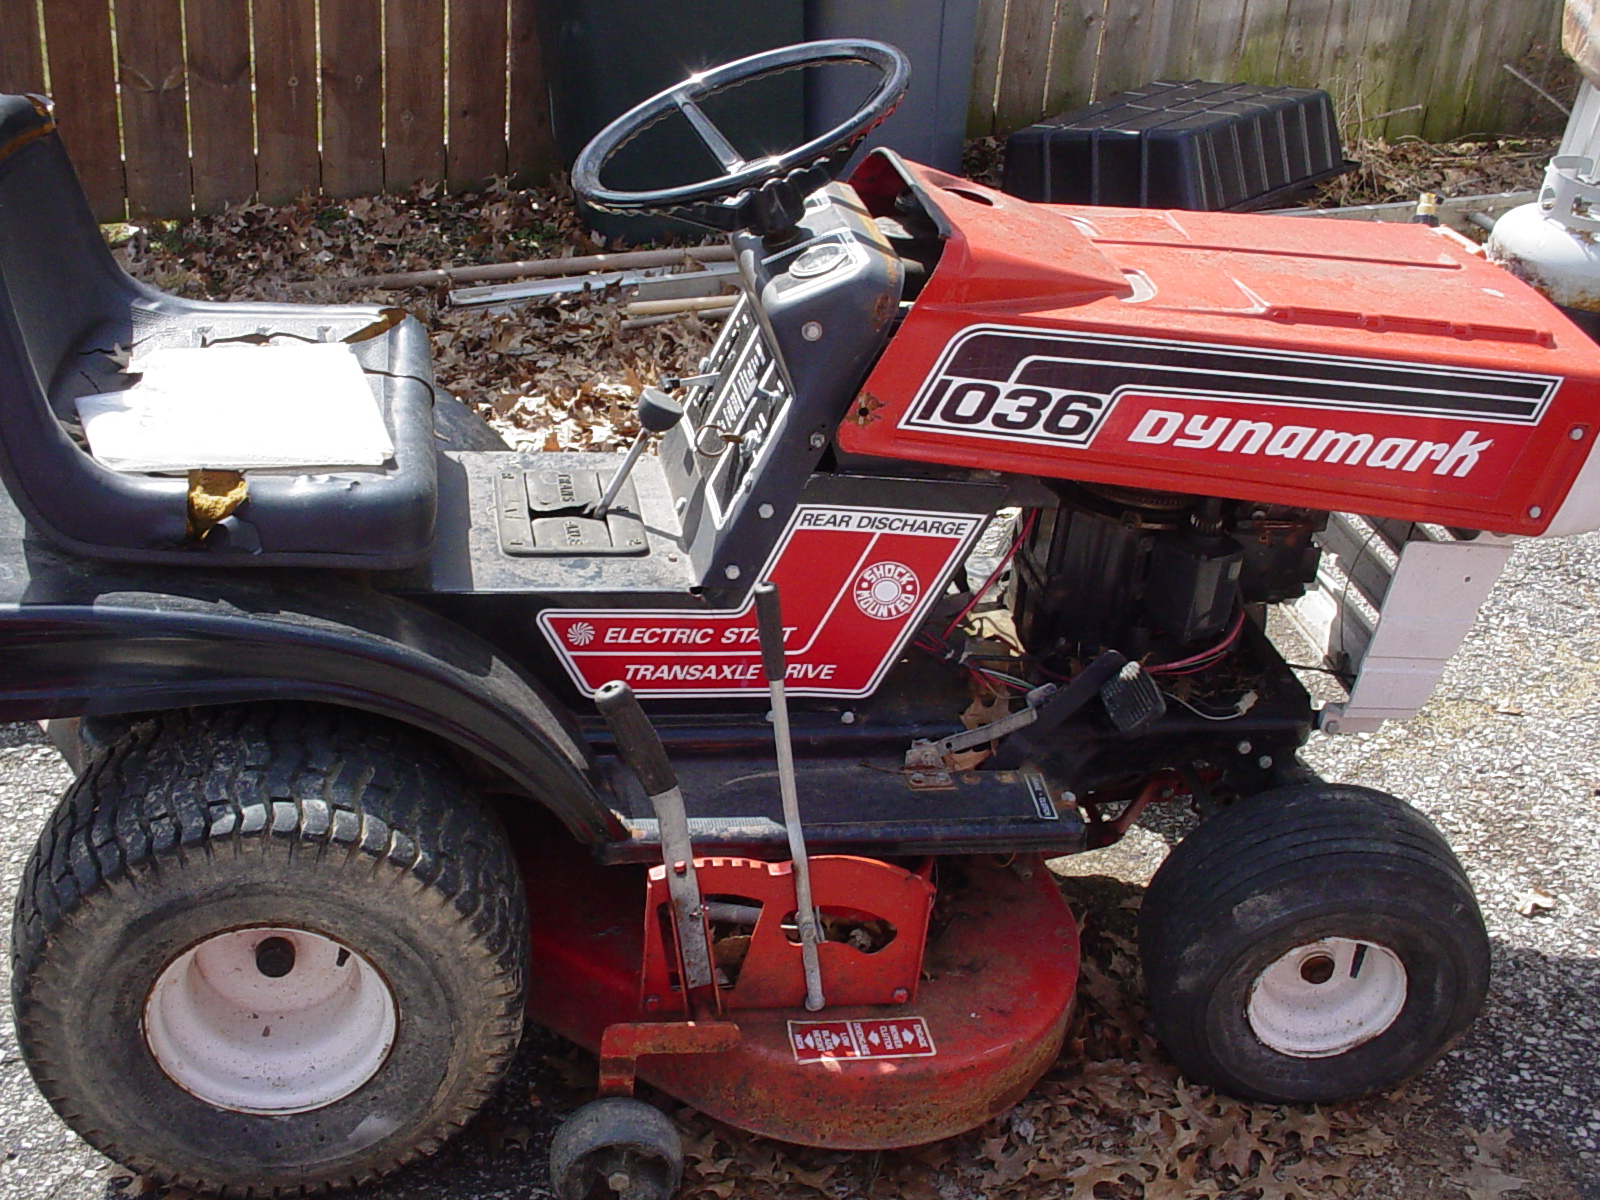 dynamark 10 36 rear discharge tractor forum your online tractor rh tractorforum com Dynamark Chainsaw Manual Briggs and Stratton Mower Manual